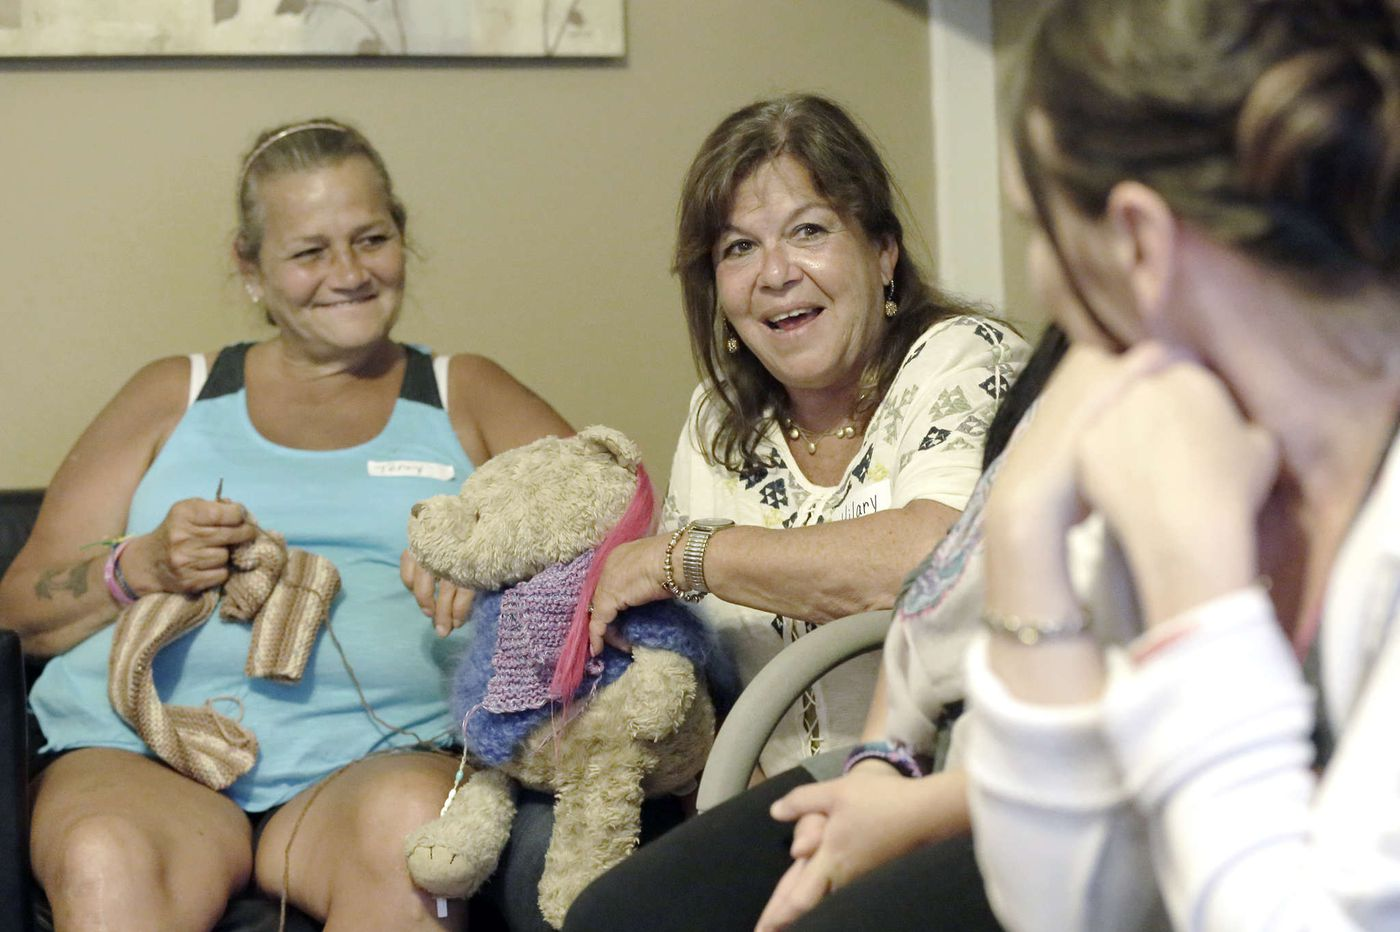 Mothers of addicts and women in recovery (sometimes mothers, too), gather to fill a void